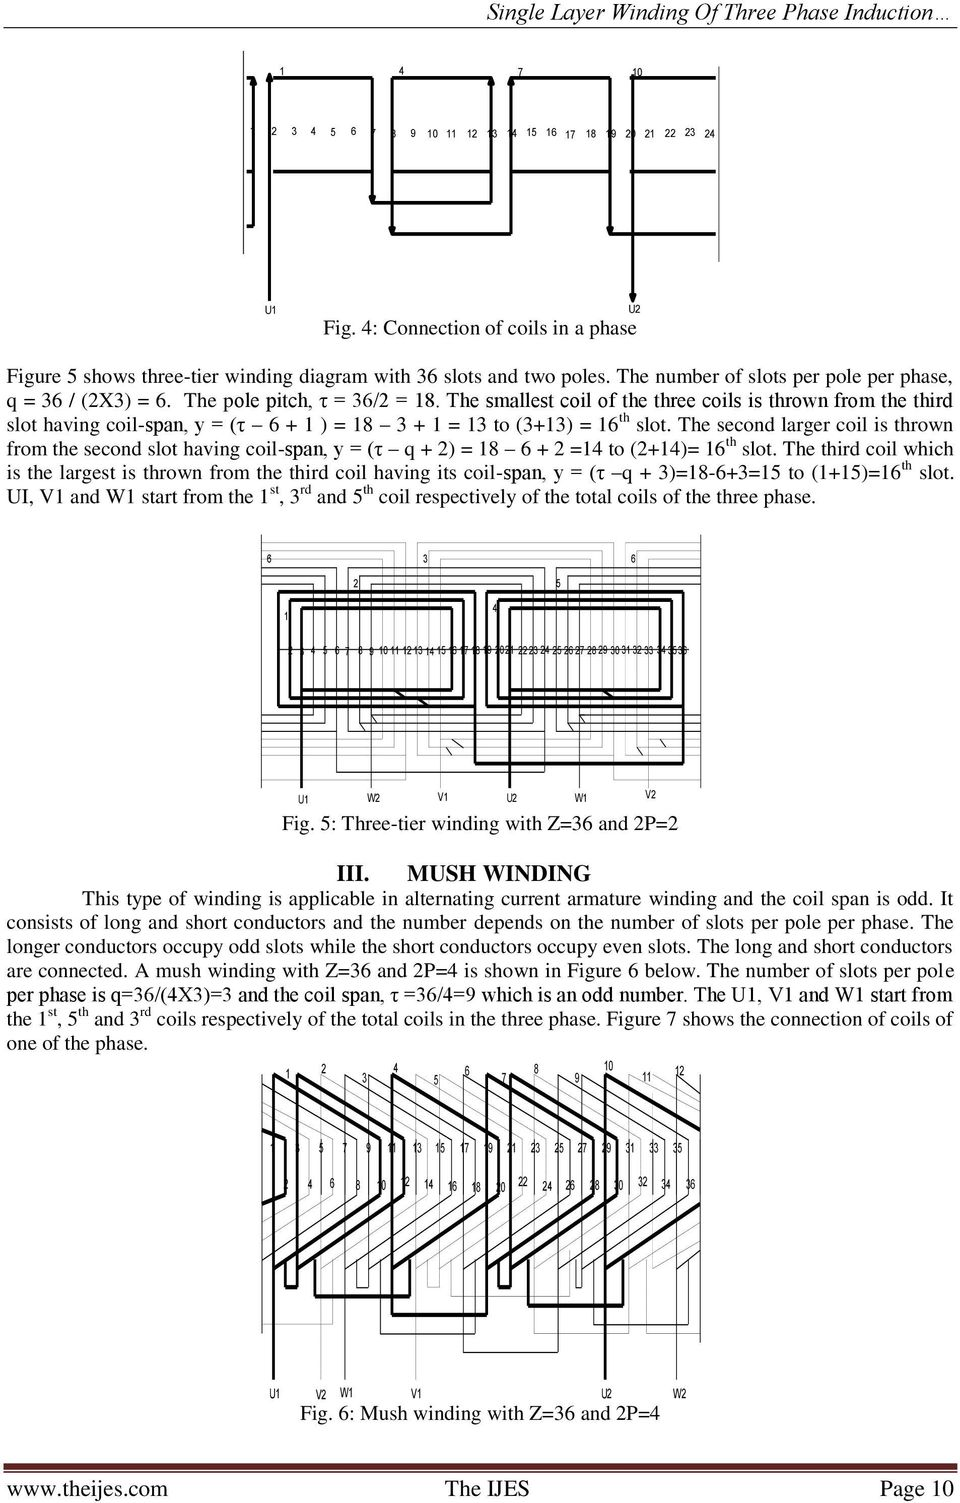 Three Phase Induction Motor Winding Diagram Electrical Wiring Diagrams The Threephase 3 Pdf Newmotorspot Co Circuit